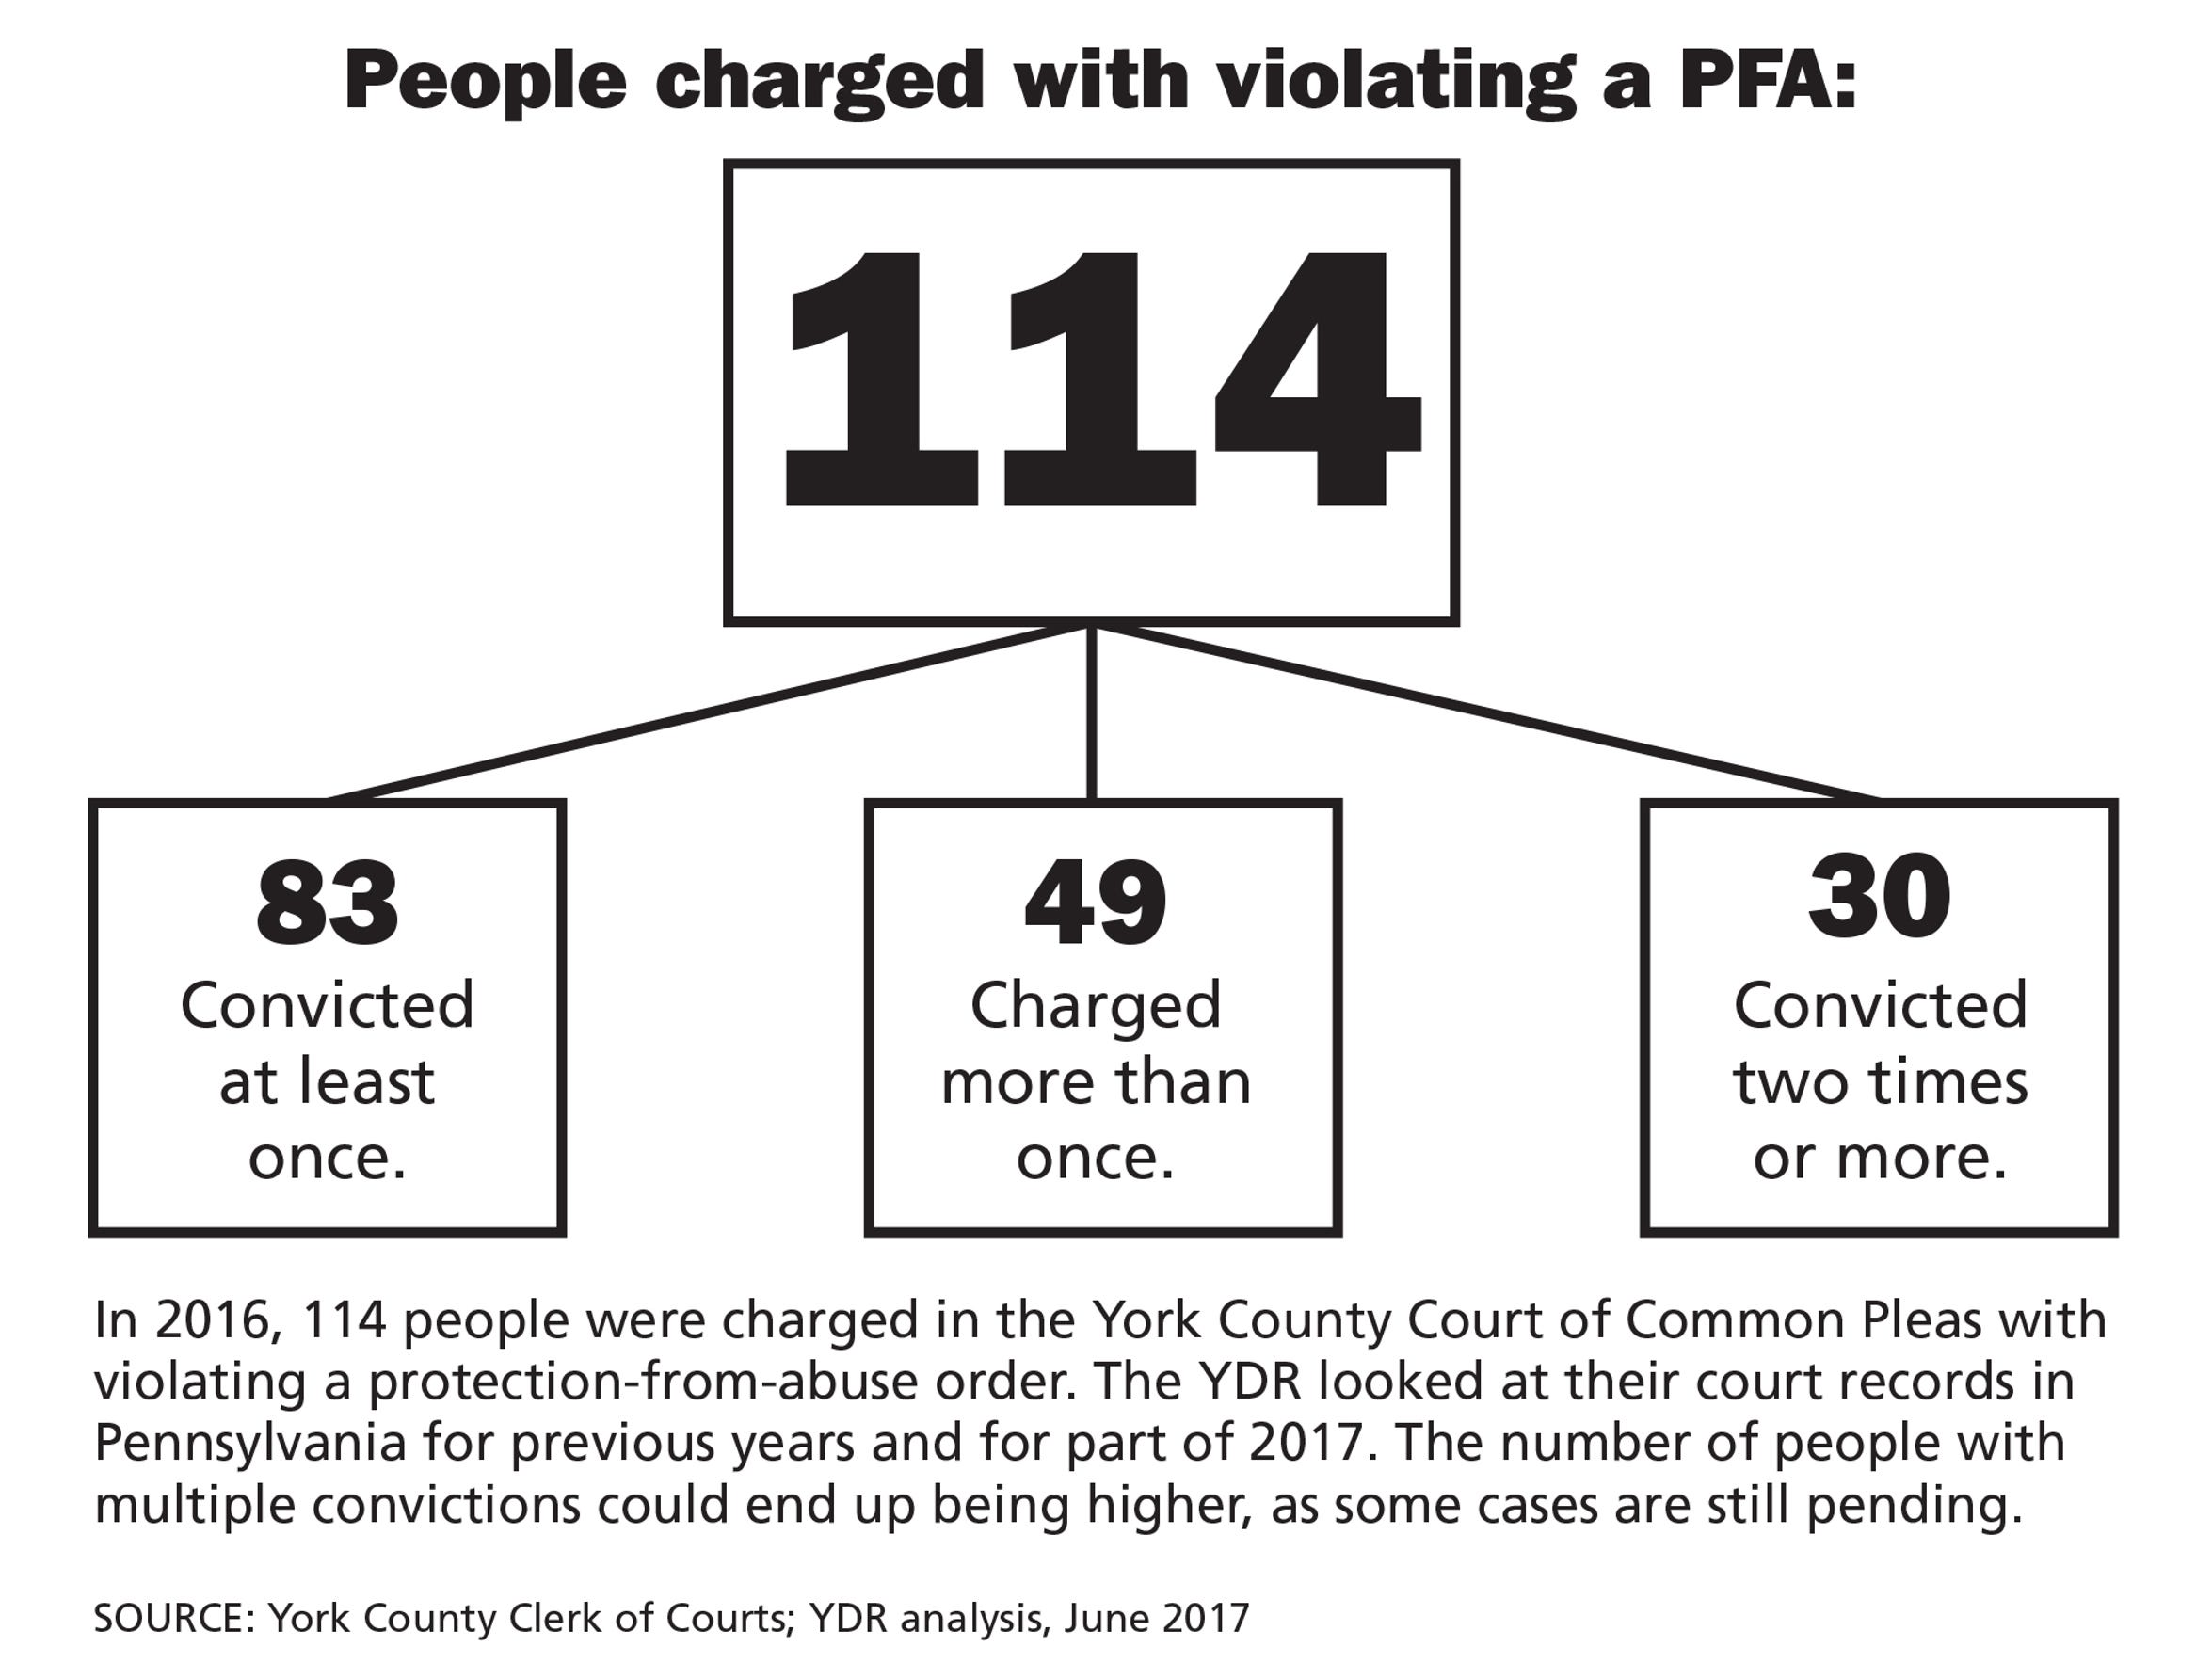 In 2016, 114 people were charged in the York County